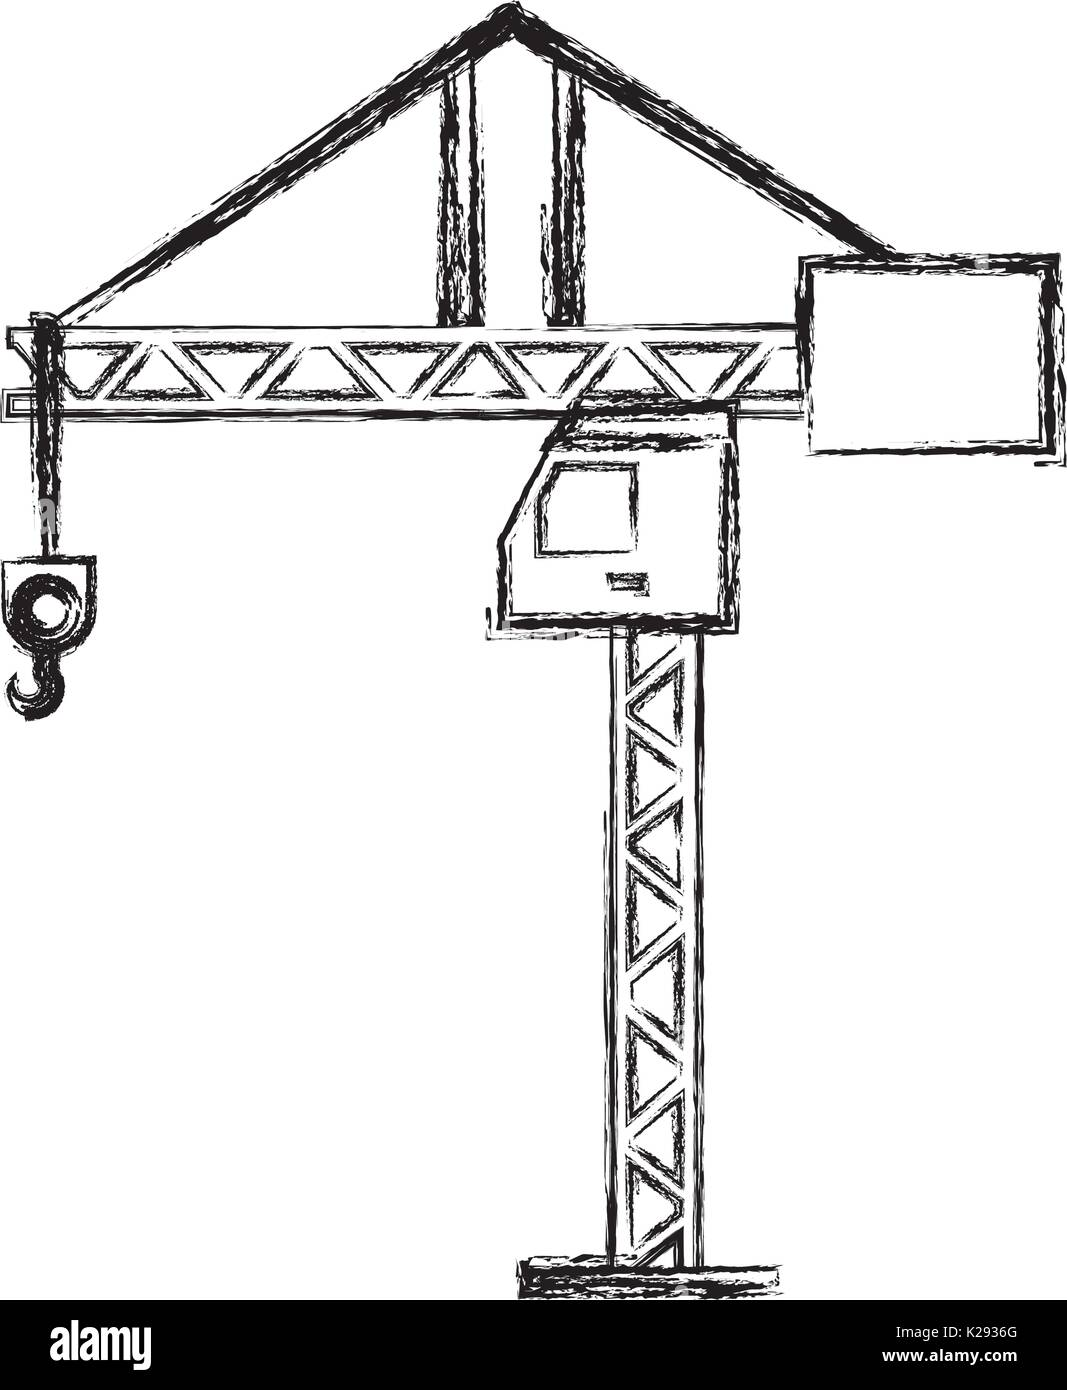 hight resolution of tower crane symbol